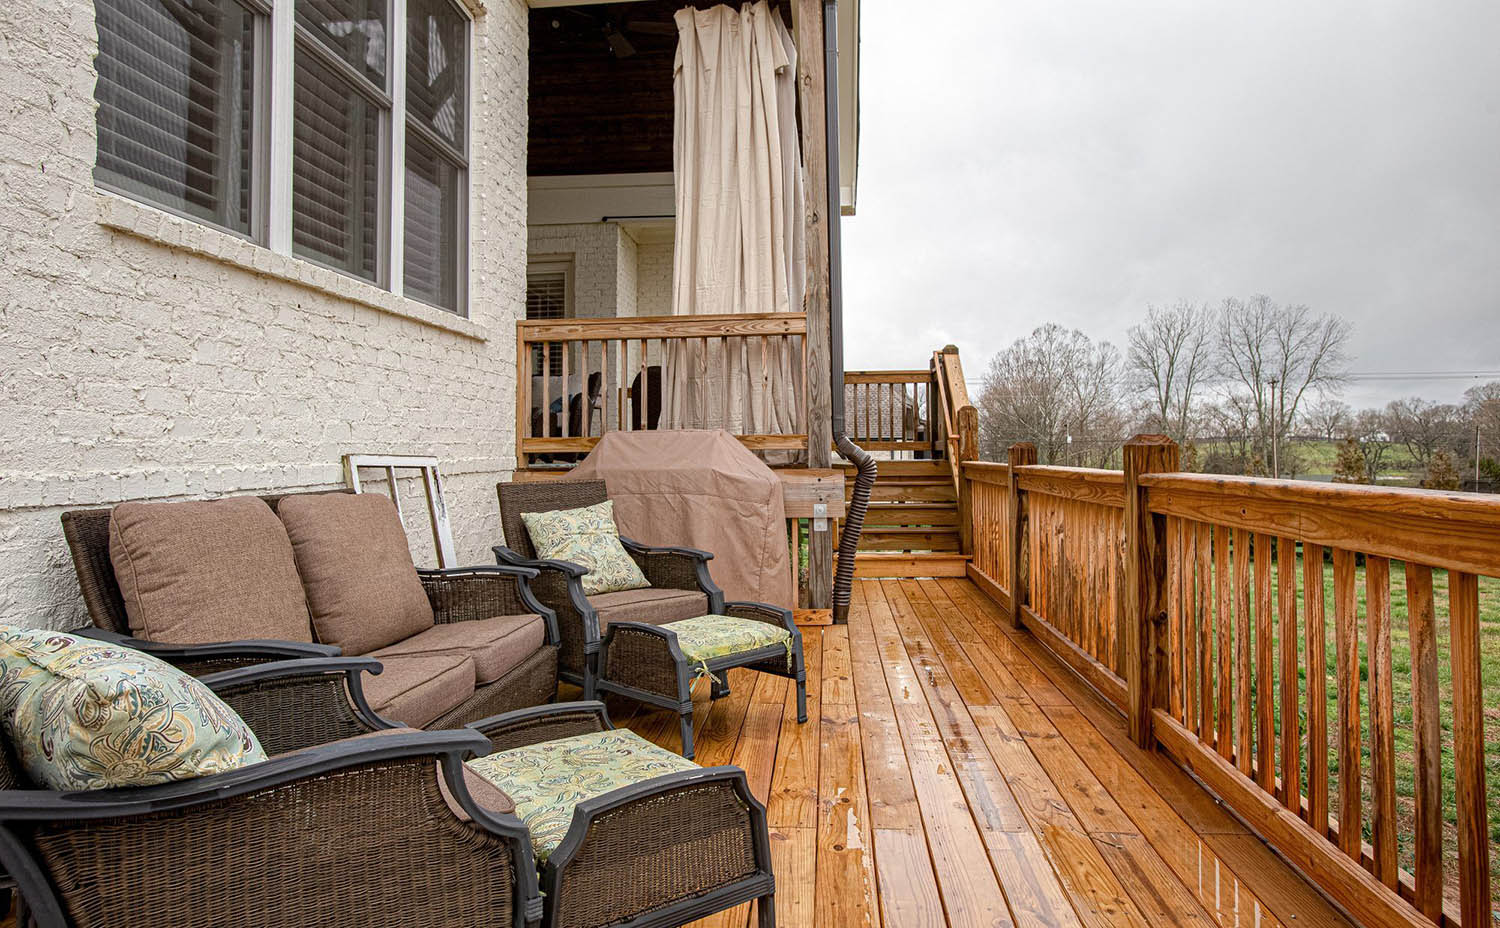 painted white brick house with real wood deck and outdoor furniture